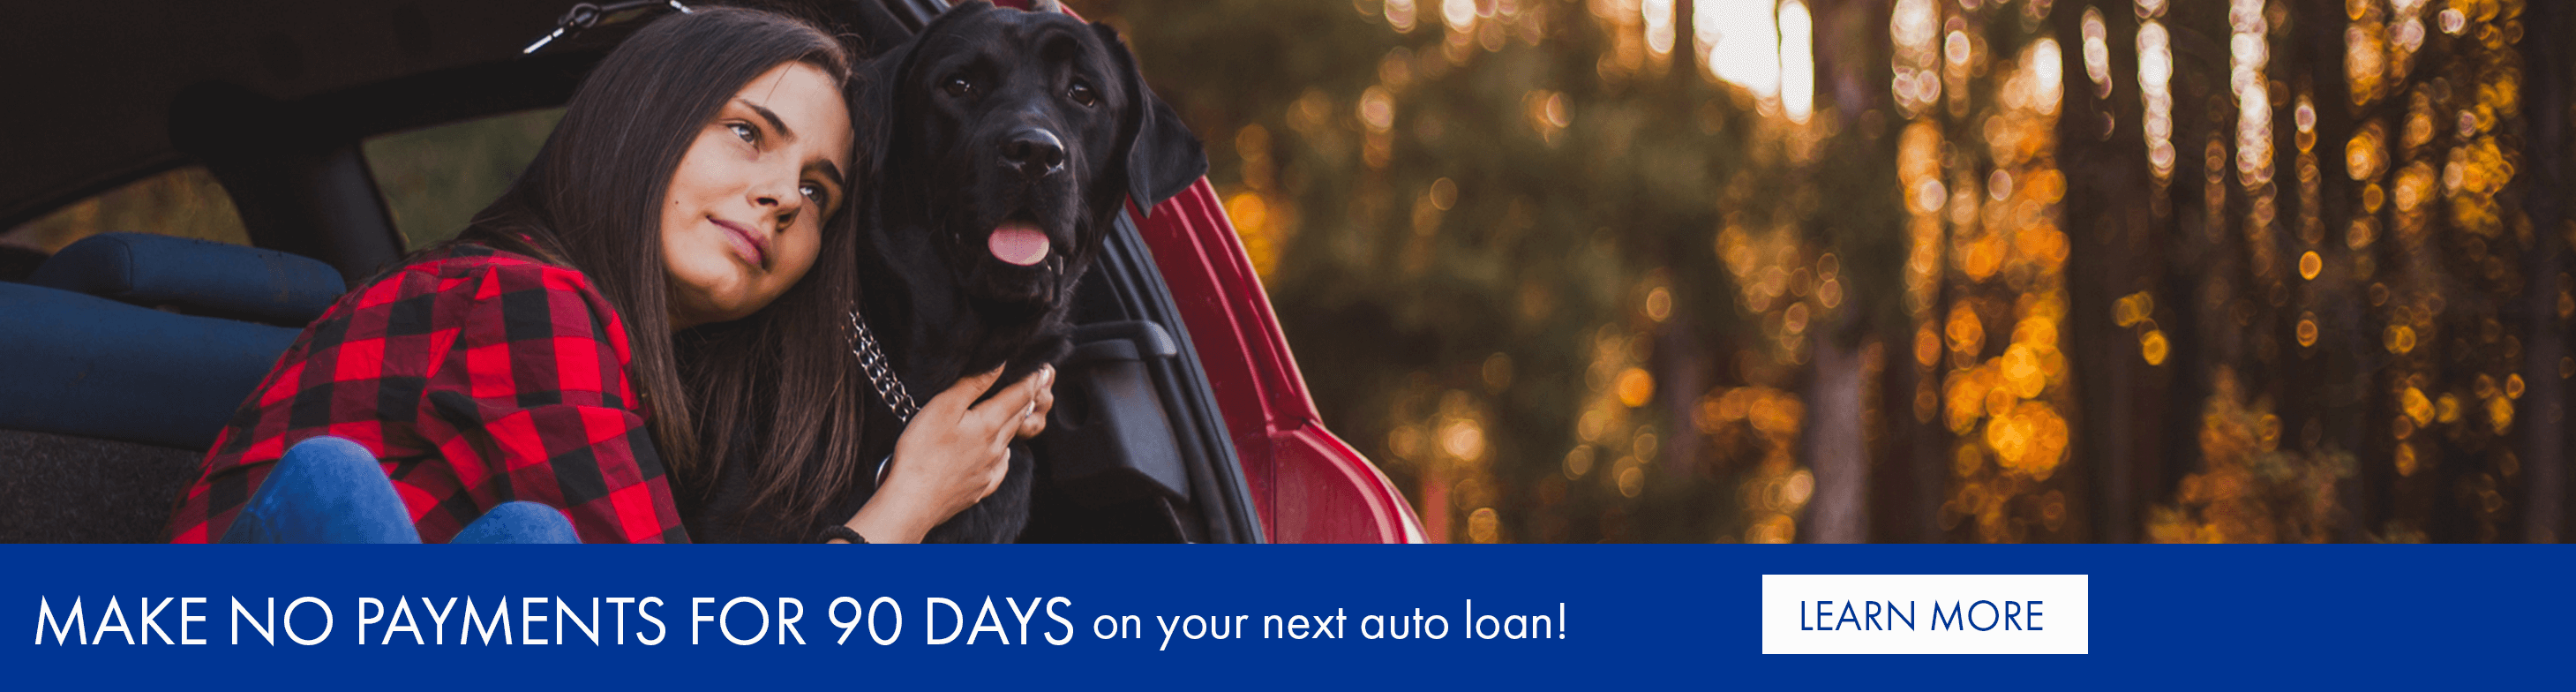 Fall in love now, make the car payments later. Rates as low as 2.74% APR. Make no payments for 90 days on your next auto loan!